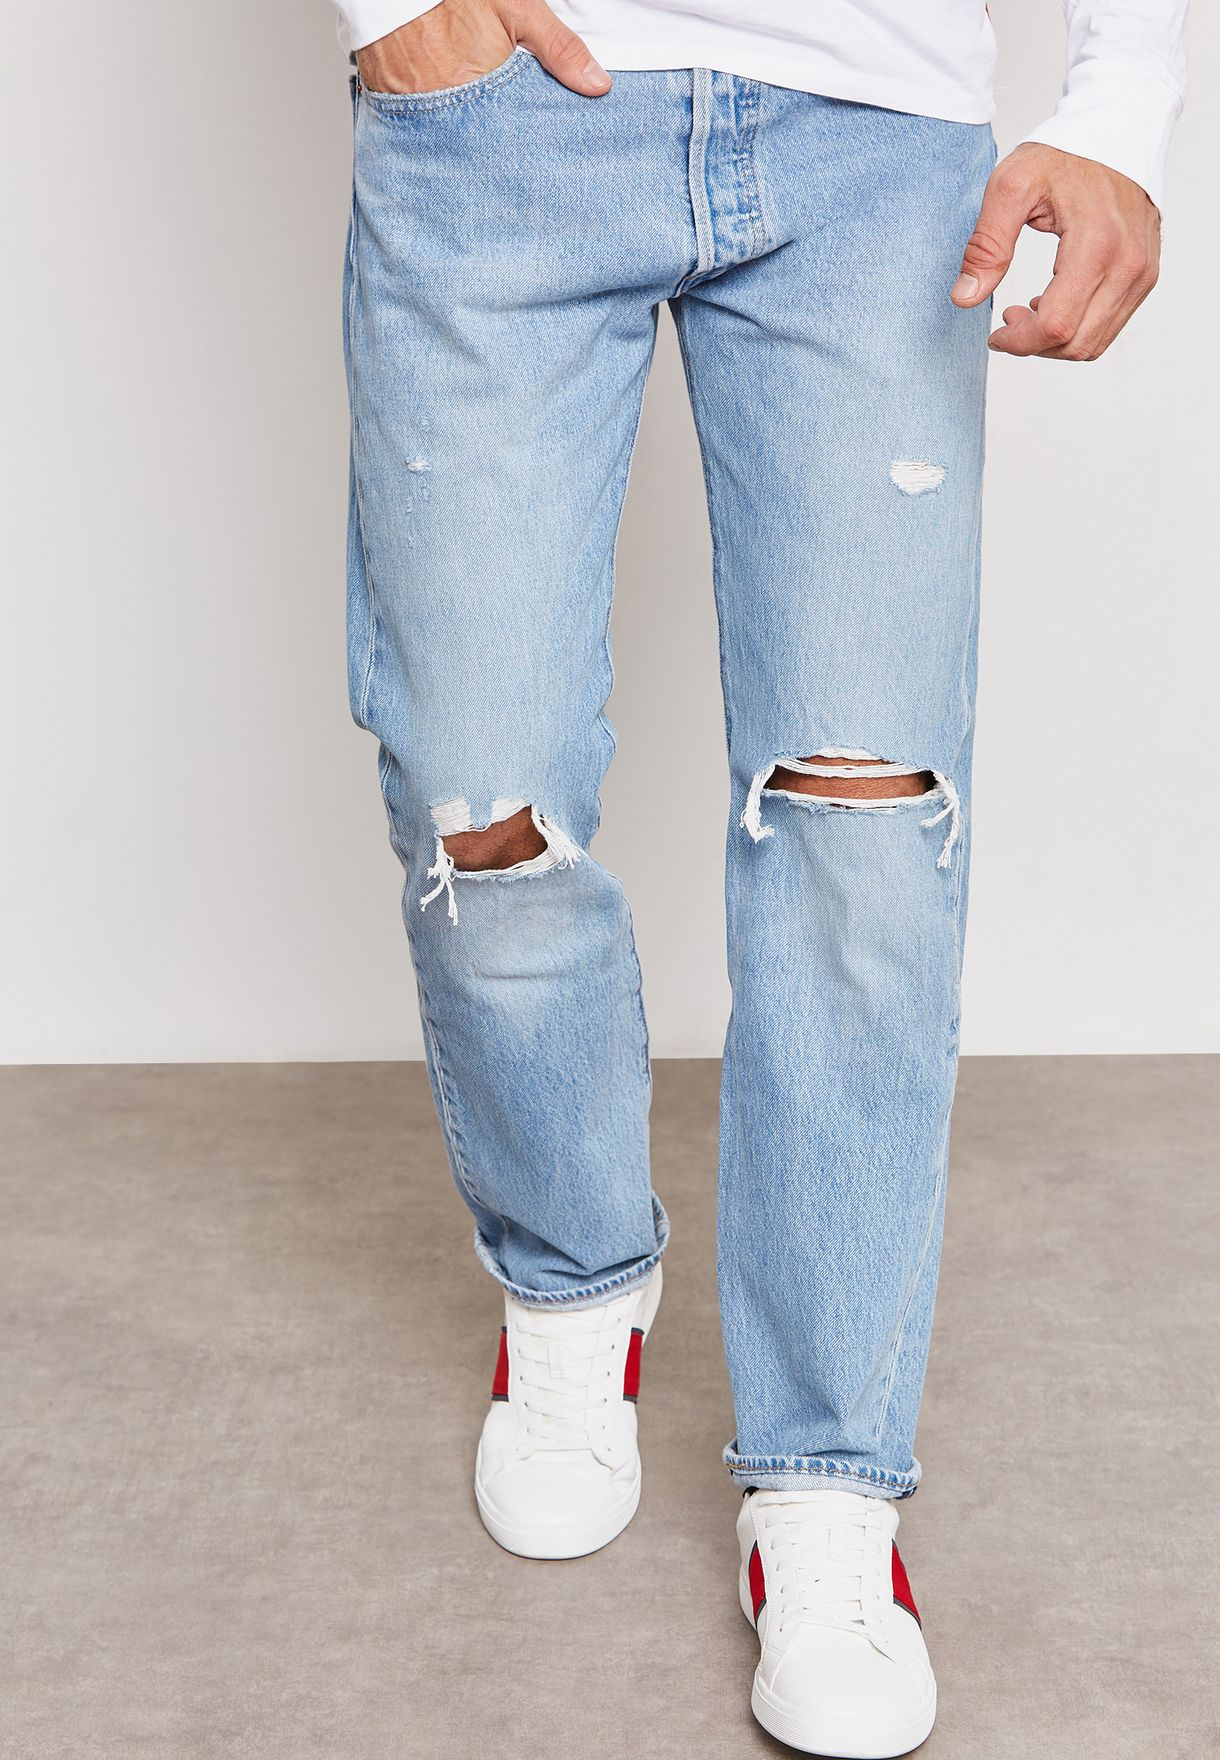 G-Star Raw Stone Washed Super Skinny Fit Low Rise Jeans Hose Jeans 24//32 27//34